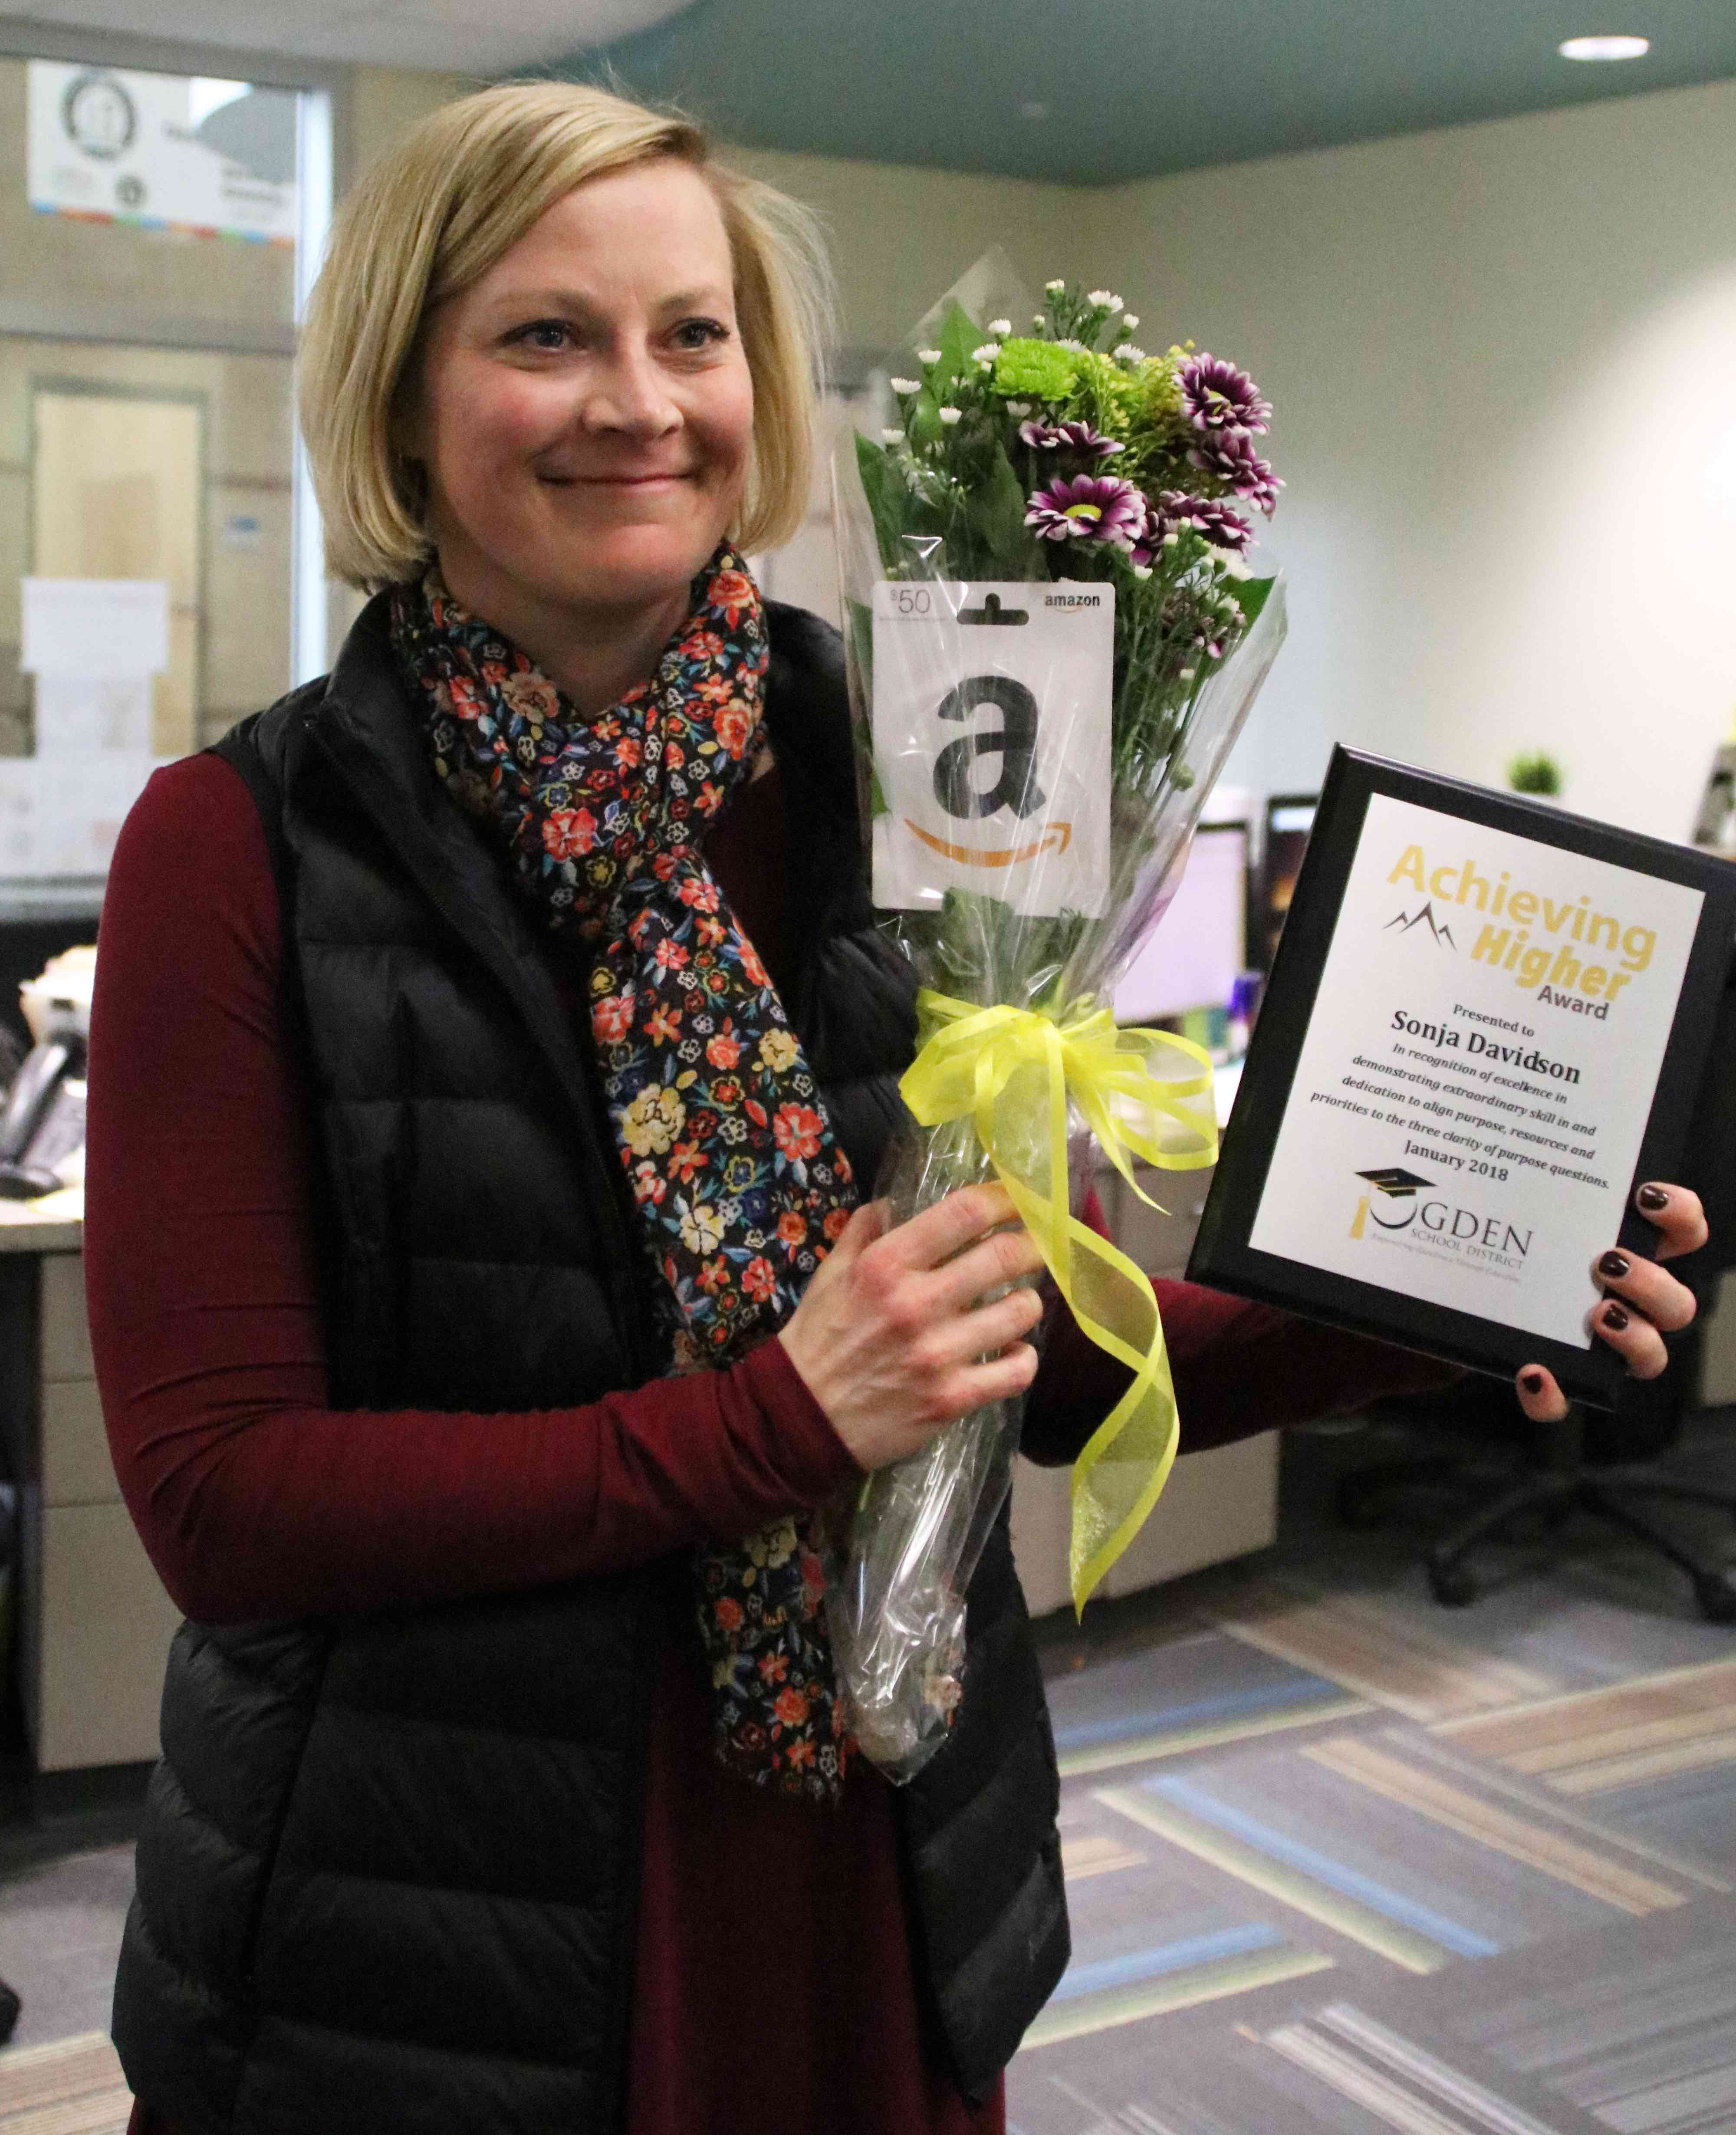 Congratulations to Sonja Davidson, New Bridge vice principal, for being honored with Ogden School District's January Achieving Higher Award!